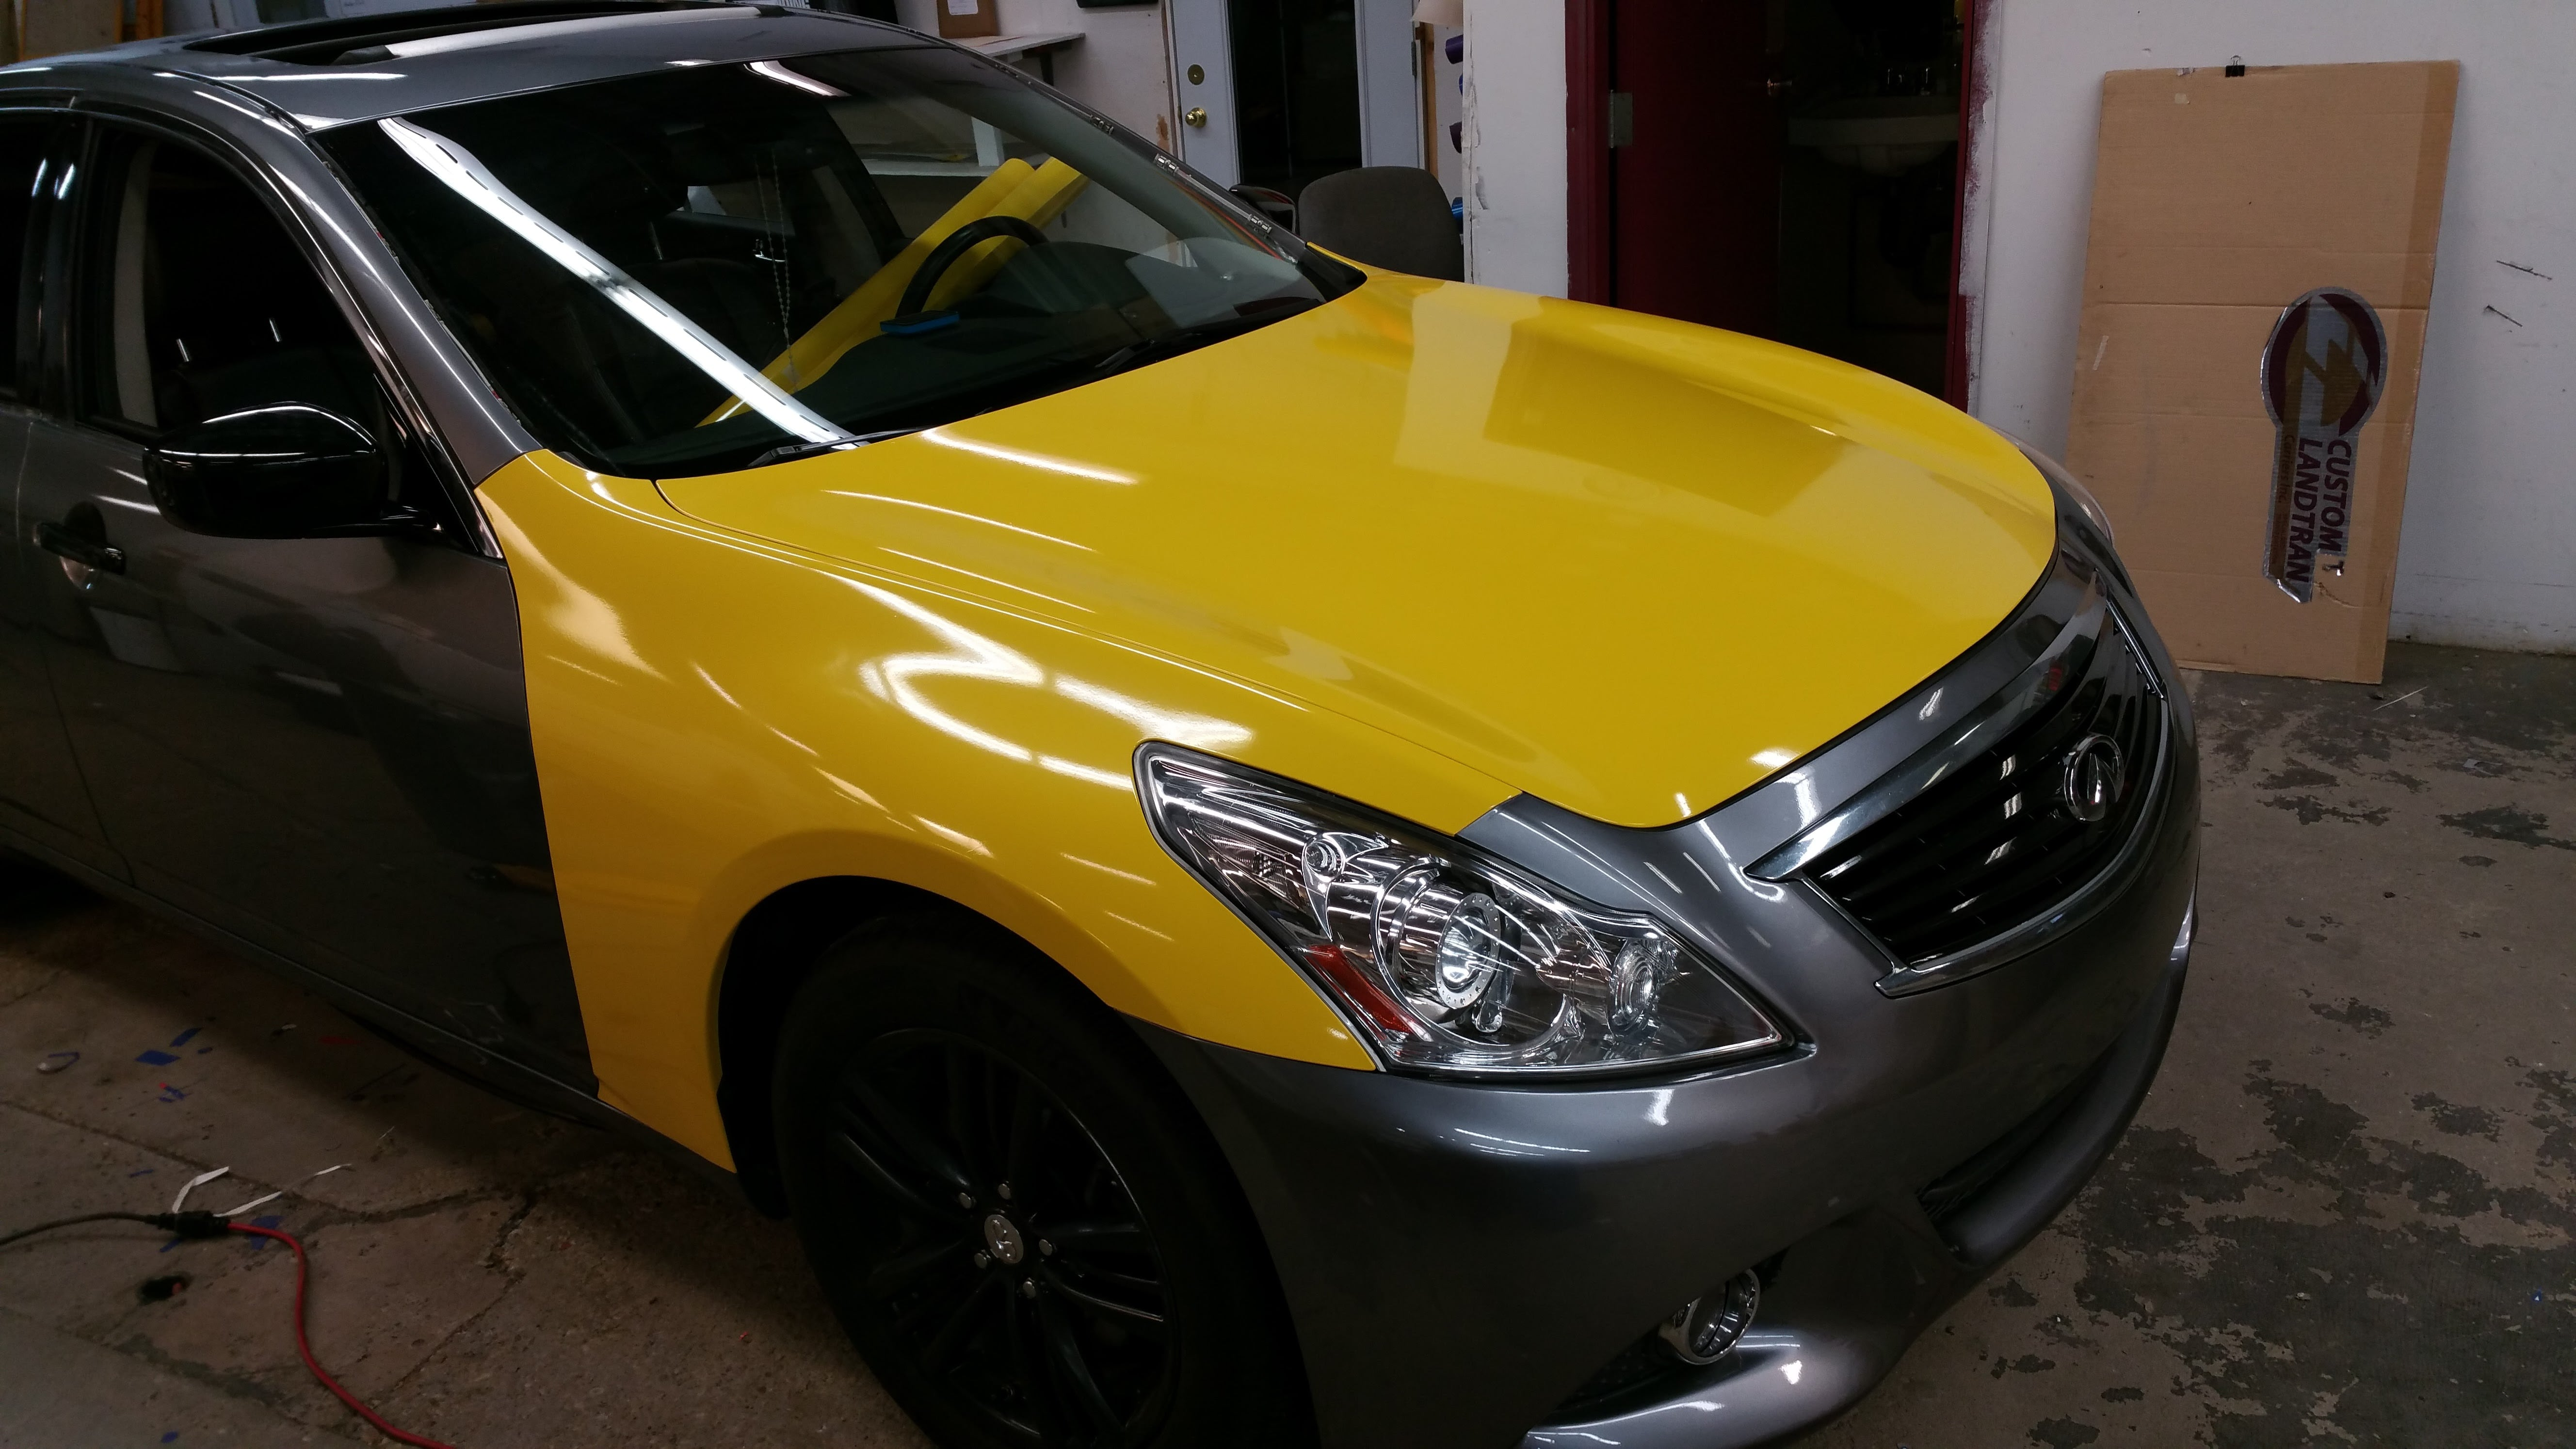 Infiniti G37 during wrapping process, hood wrapped in 3M Gloss Yellow.